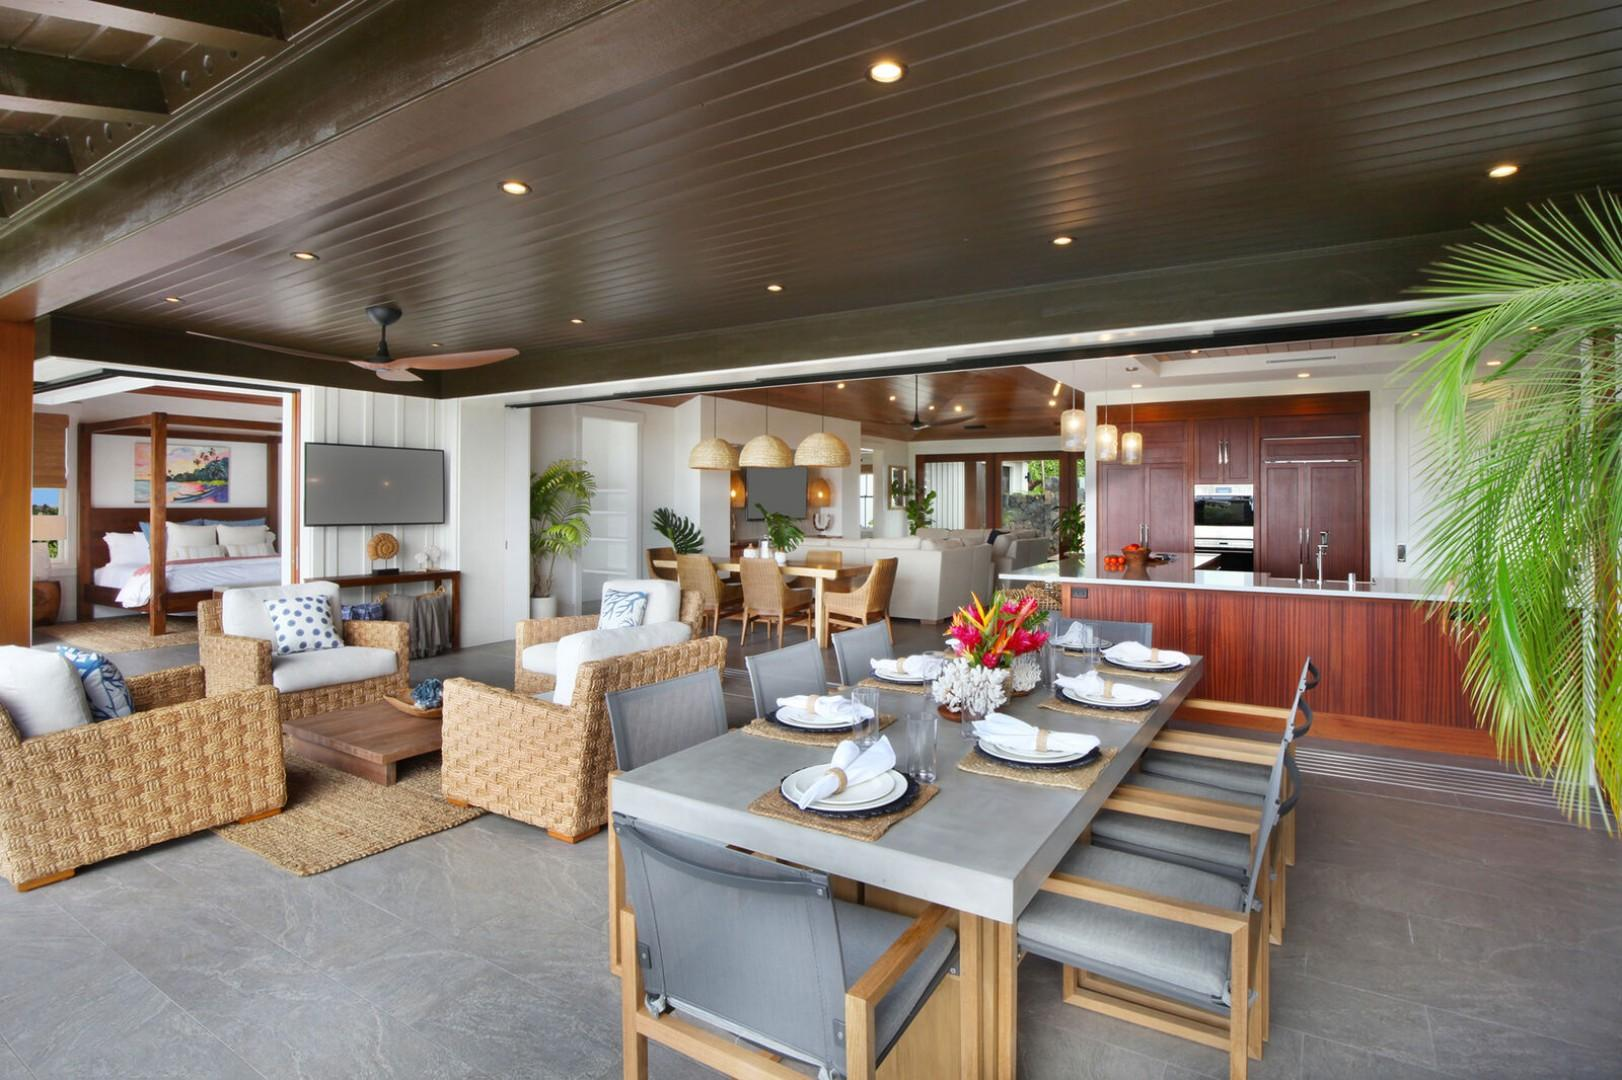 Lanai outdoor dining and living space